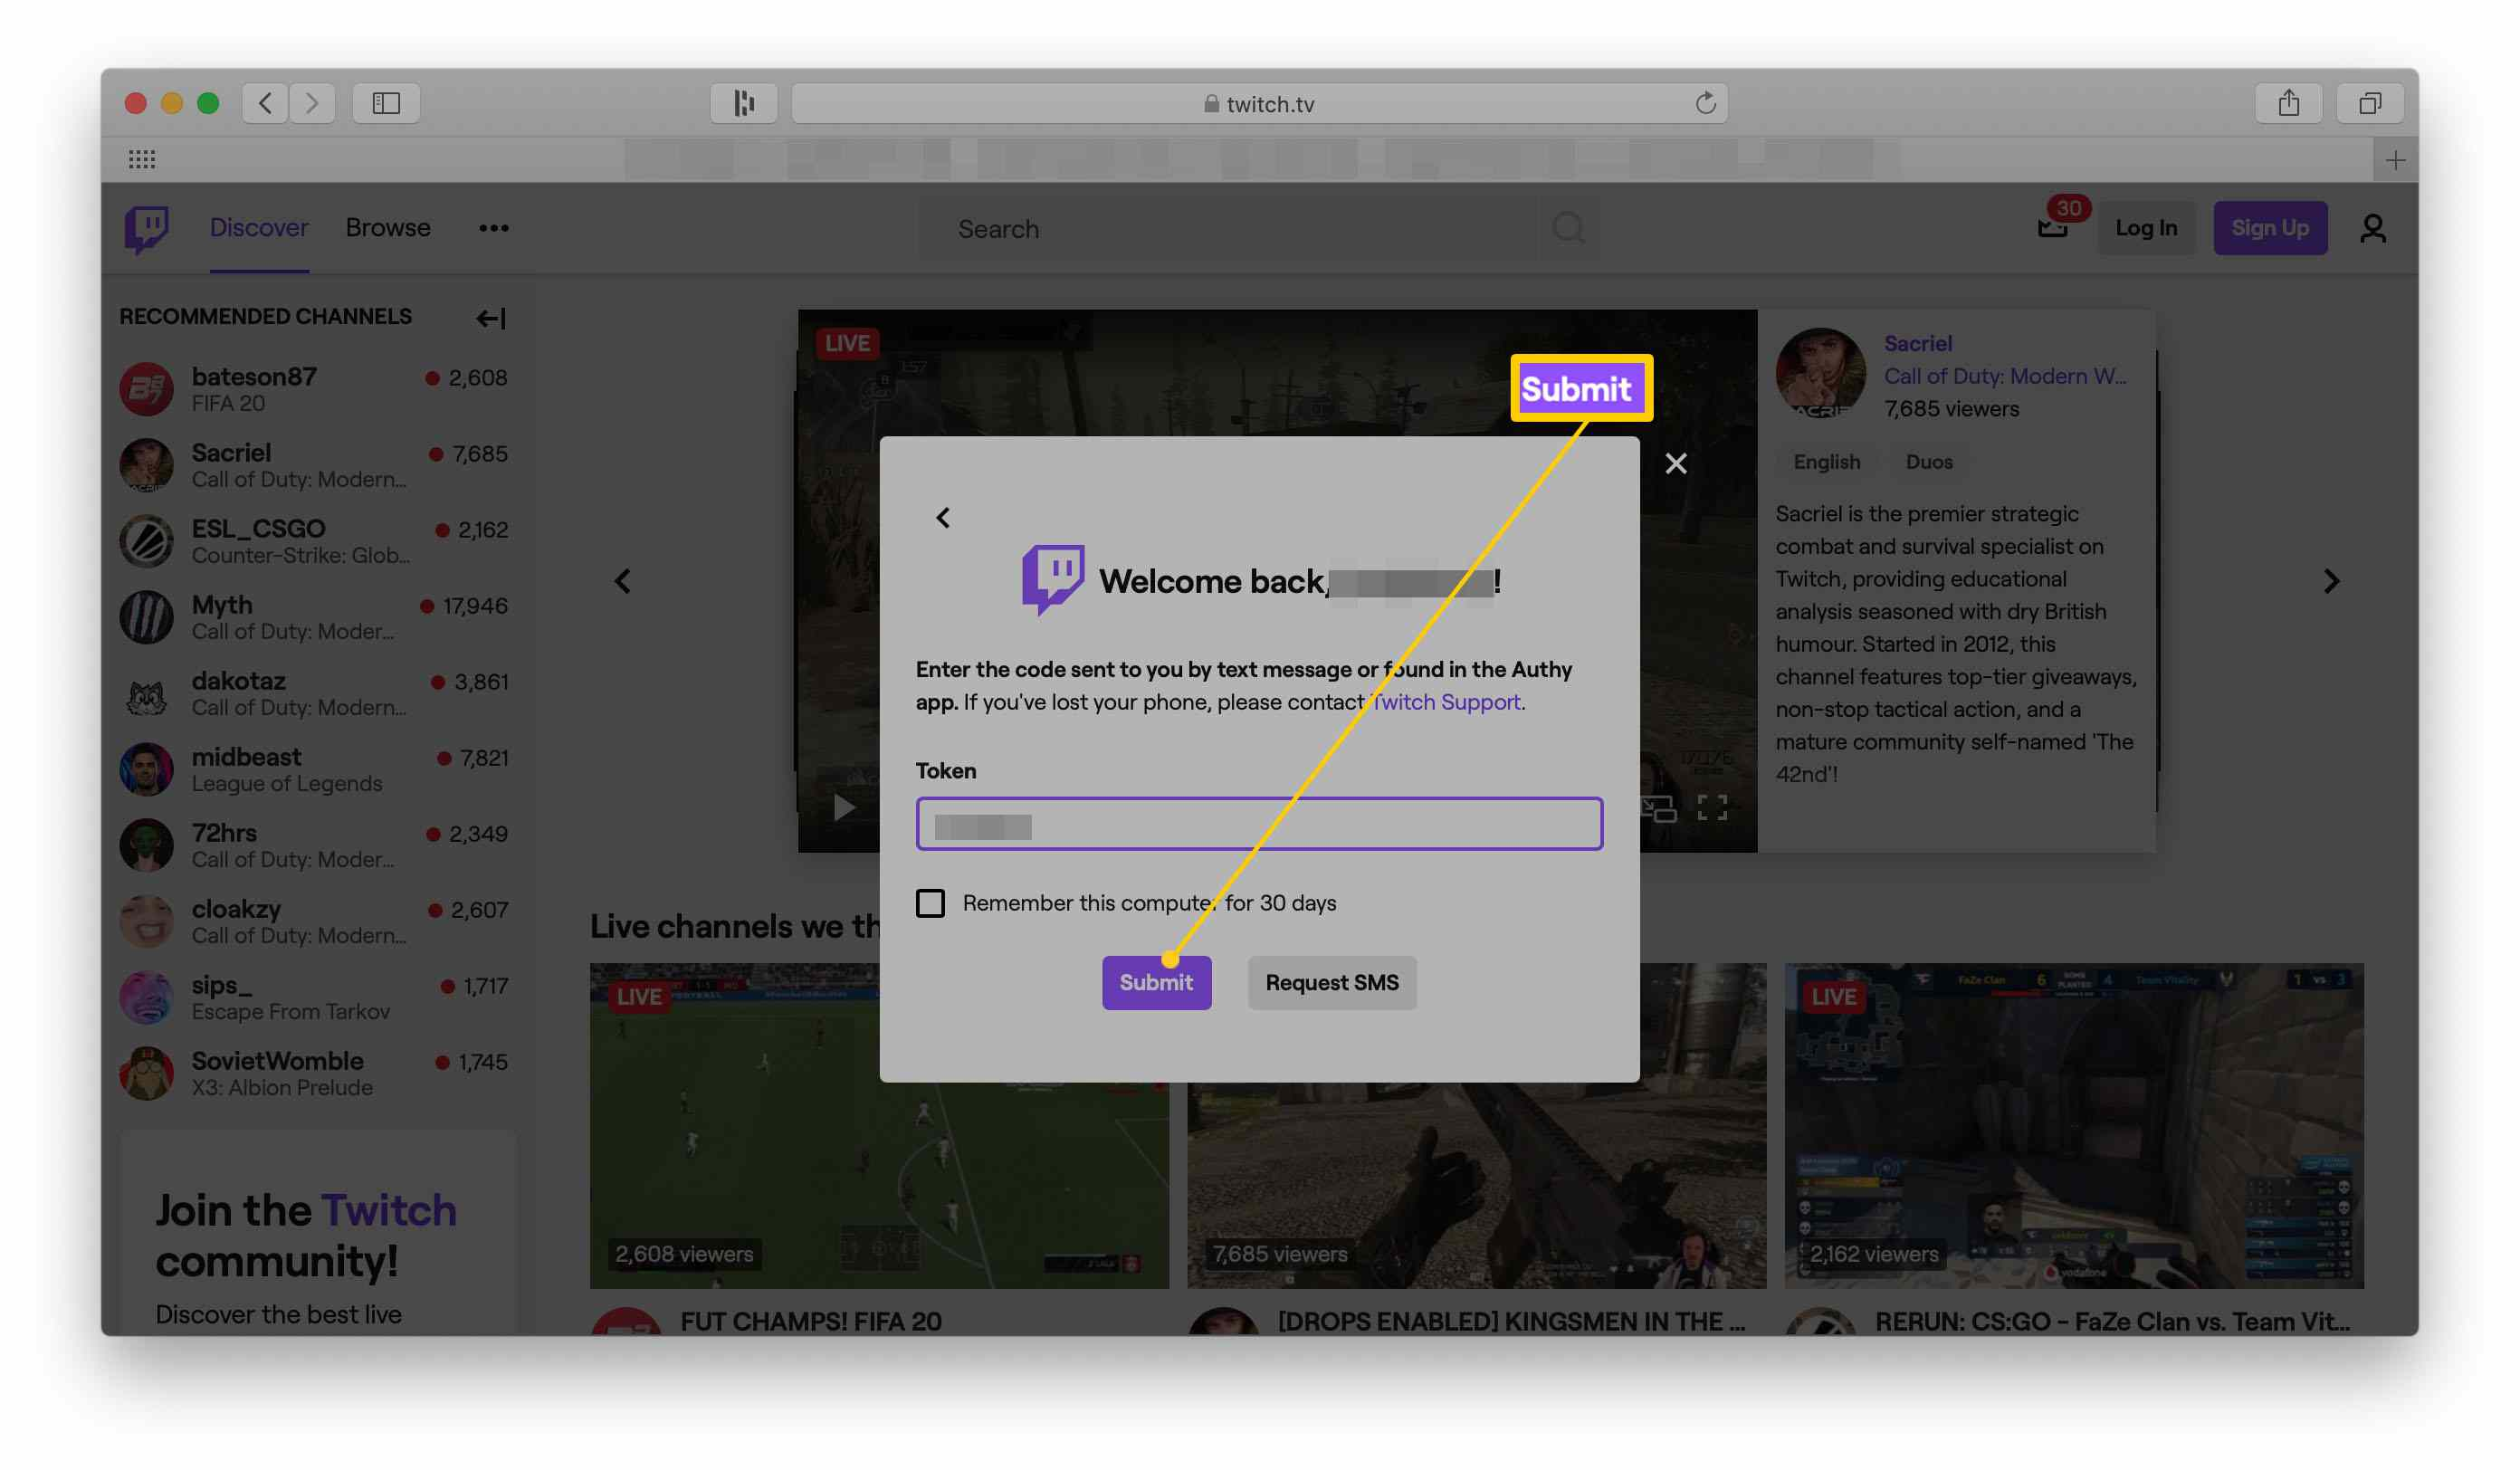 Twitch website with the two-factor authentication log in screen highlighted